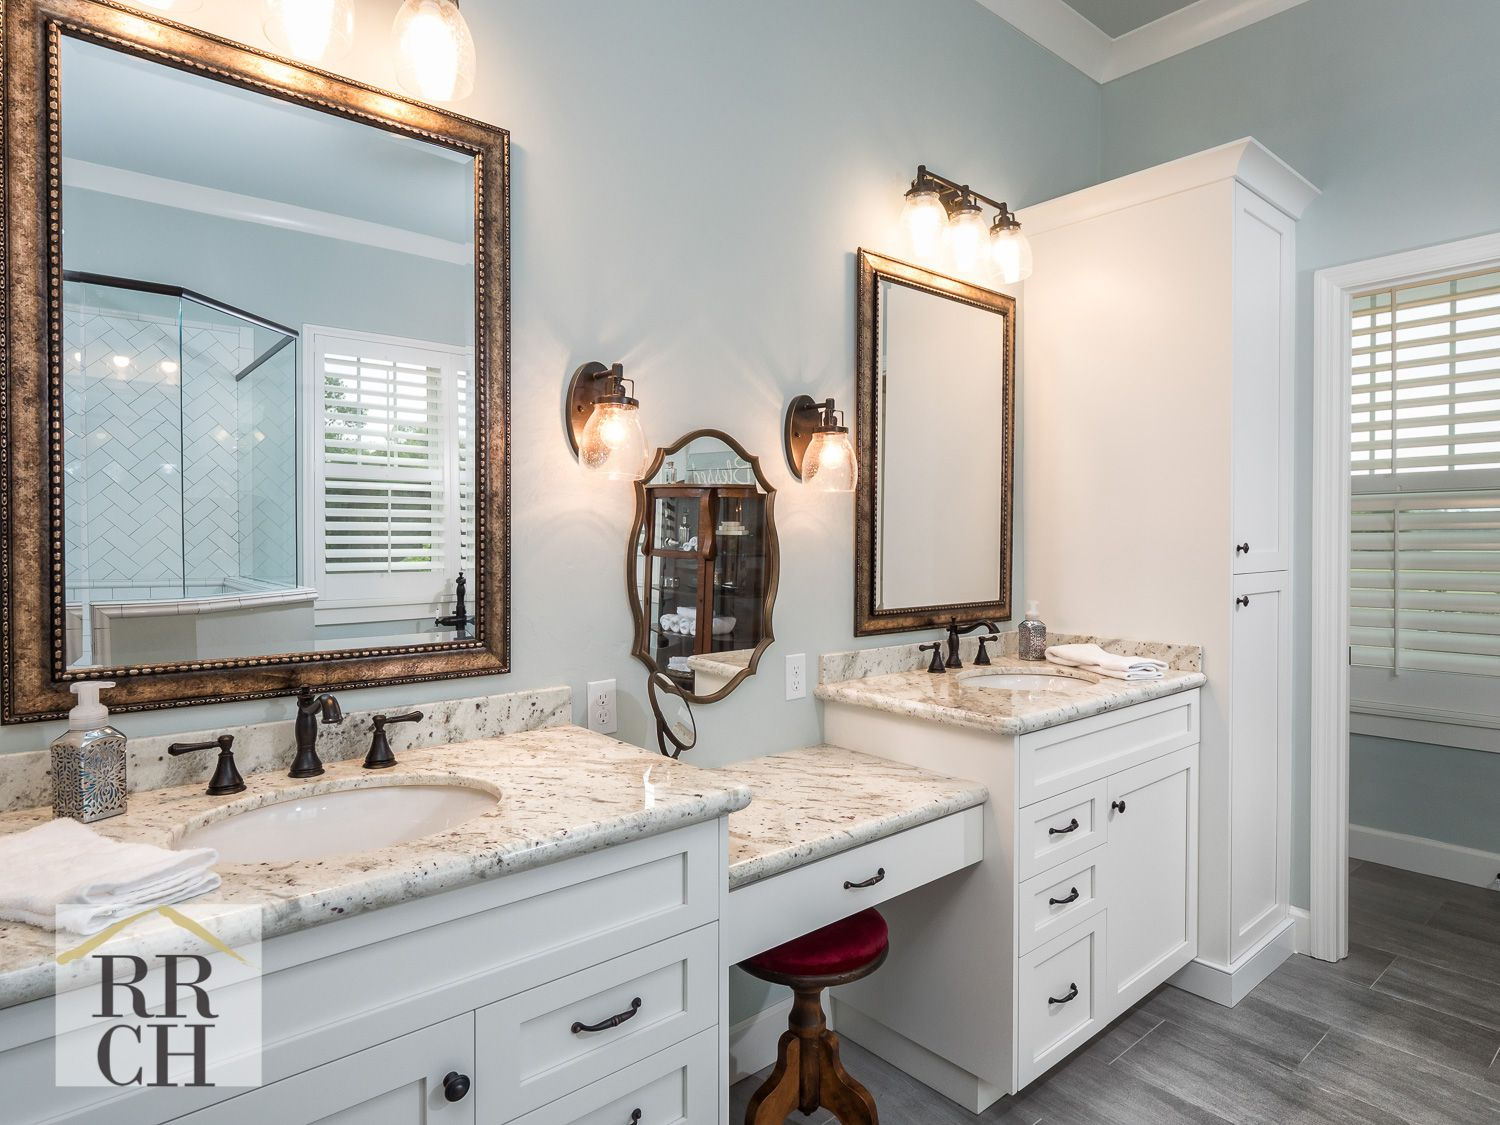 Master Bath Paint By Sherwin Williams In Sea Salt Color Freestanding Tub By Jacuzzi In Celeste Series Bathrooms Remodel Subway Tile Showers Free Standing Tub